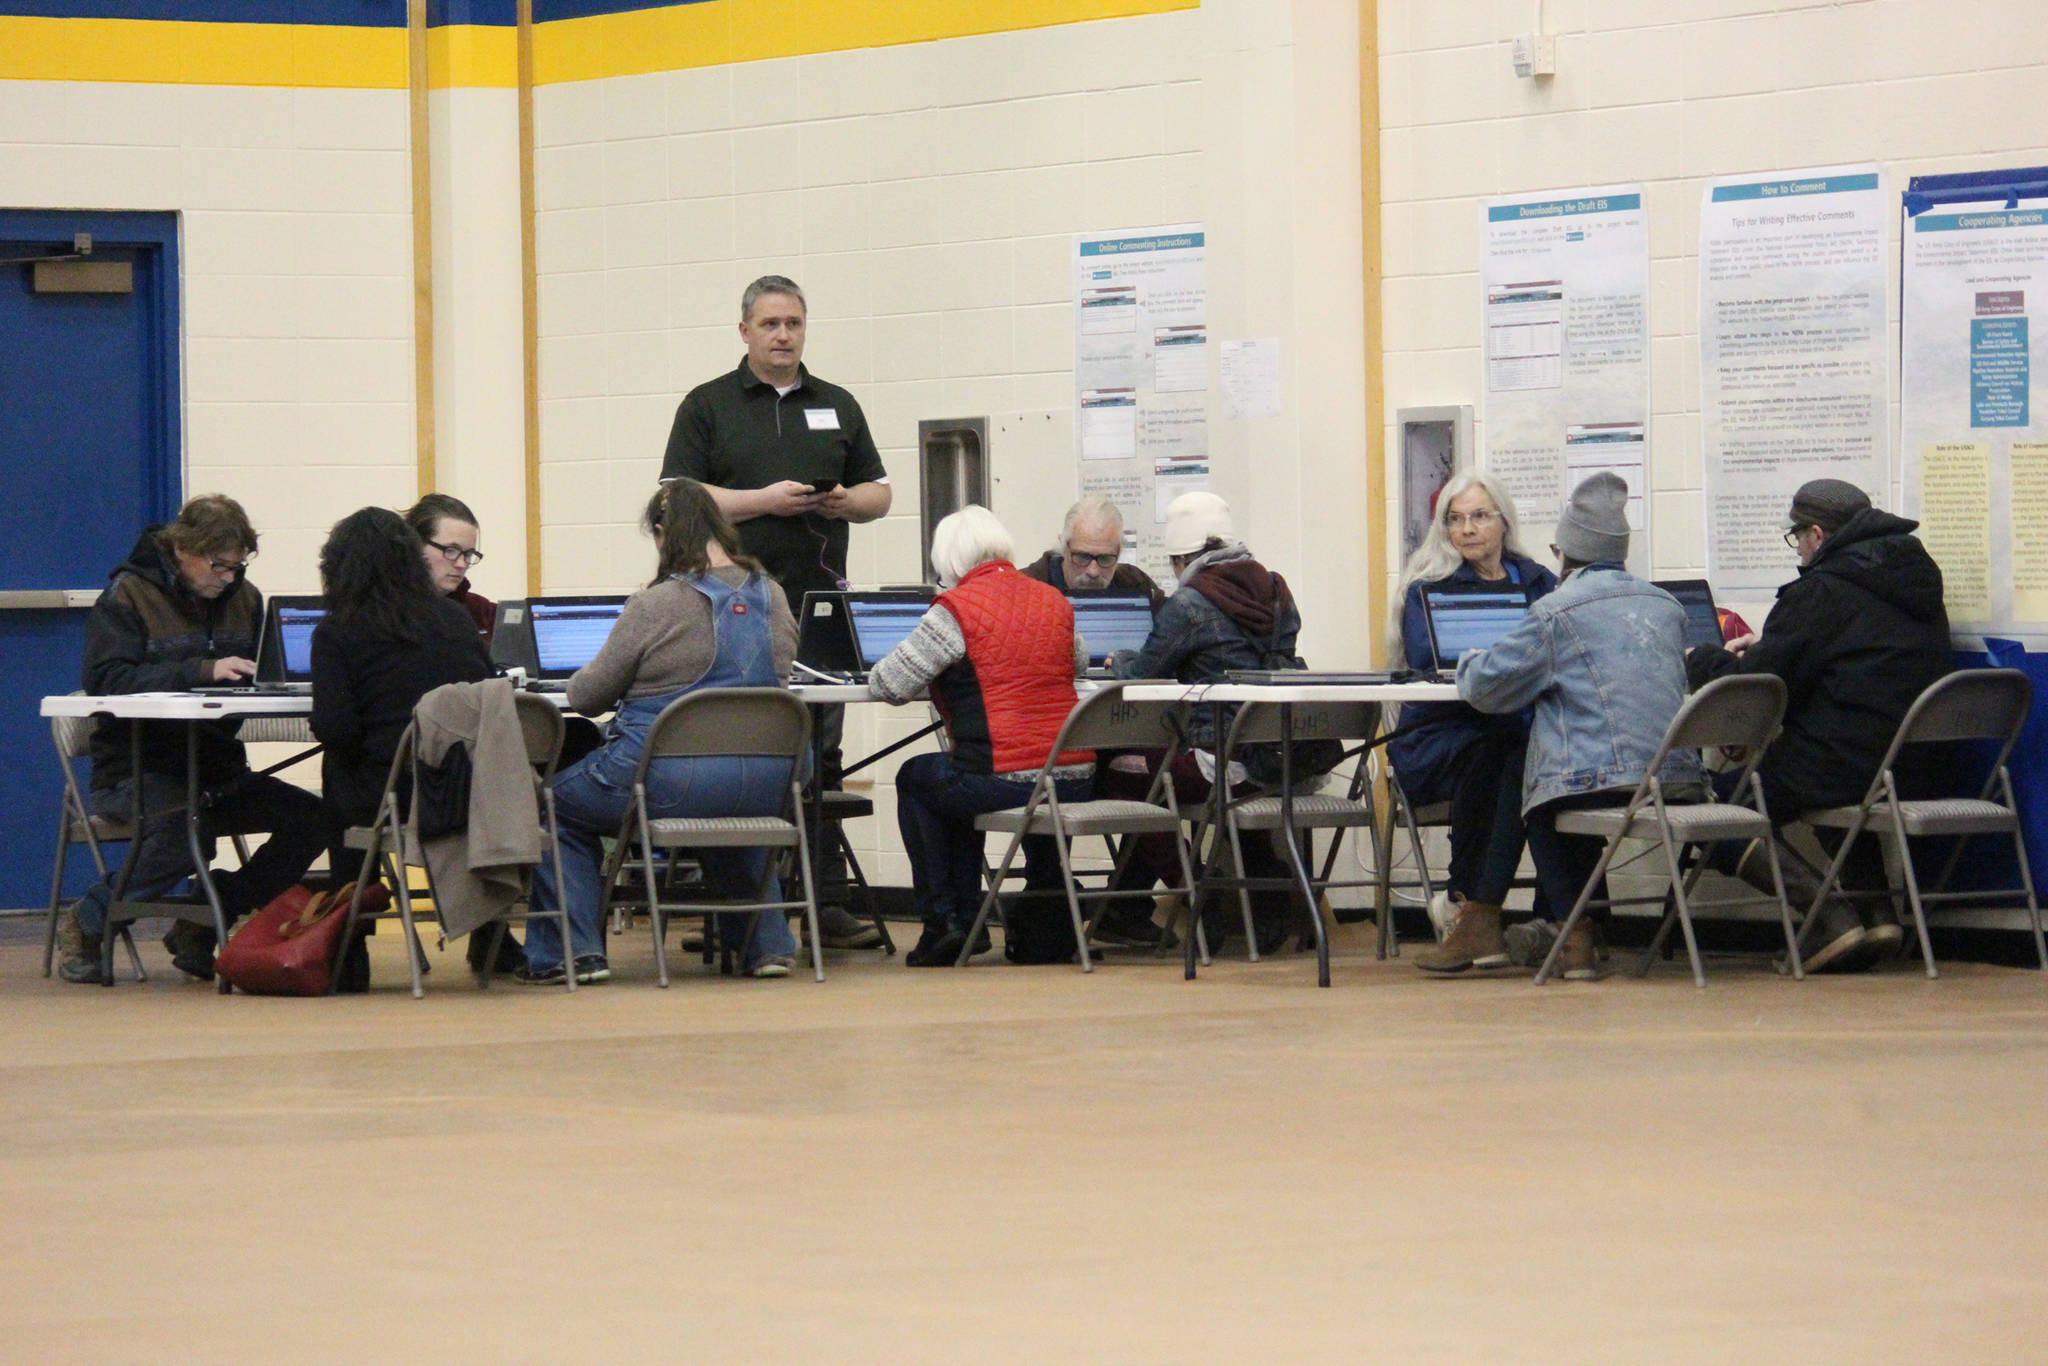 Community members submit comments about the Draft EIS for the proposed Pebble Mine to the Army Crops of Engineers through computers set up at an April 11, 2019 public hearing at Homer High School in Homer, Alaska. (Photo by Megan Pacer/Homer News)